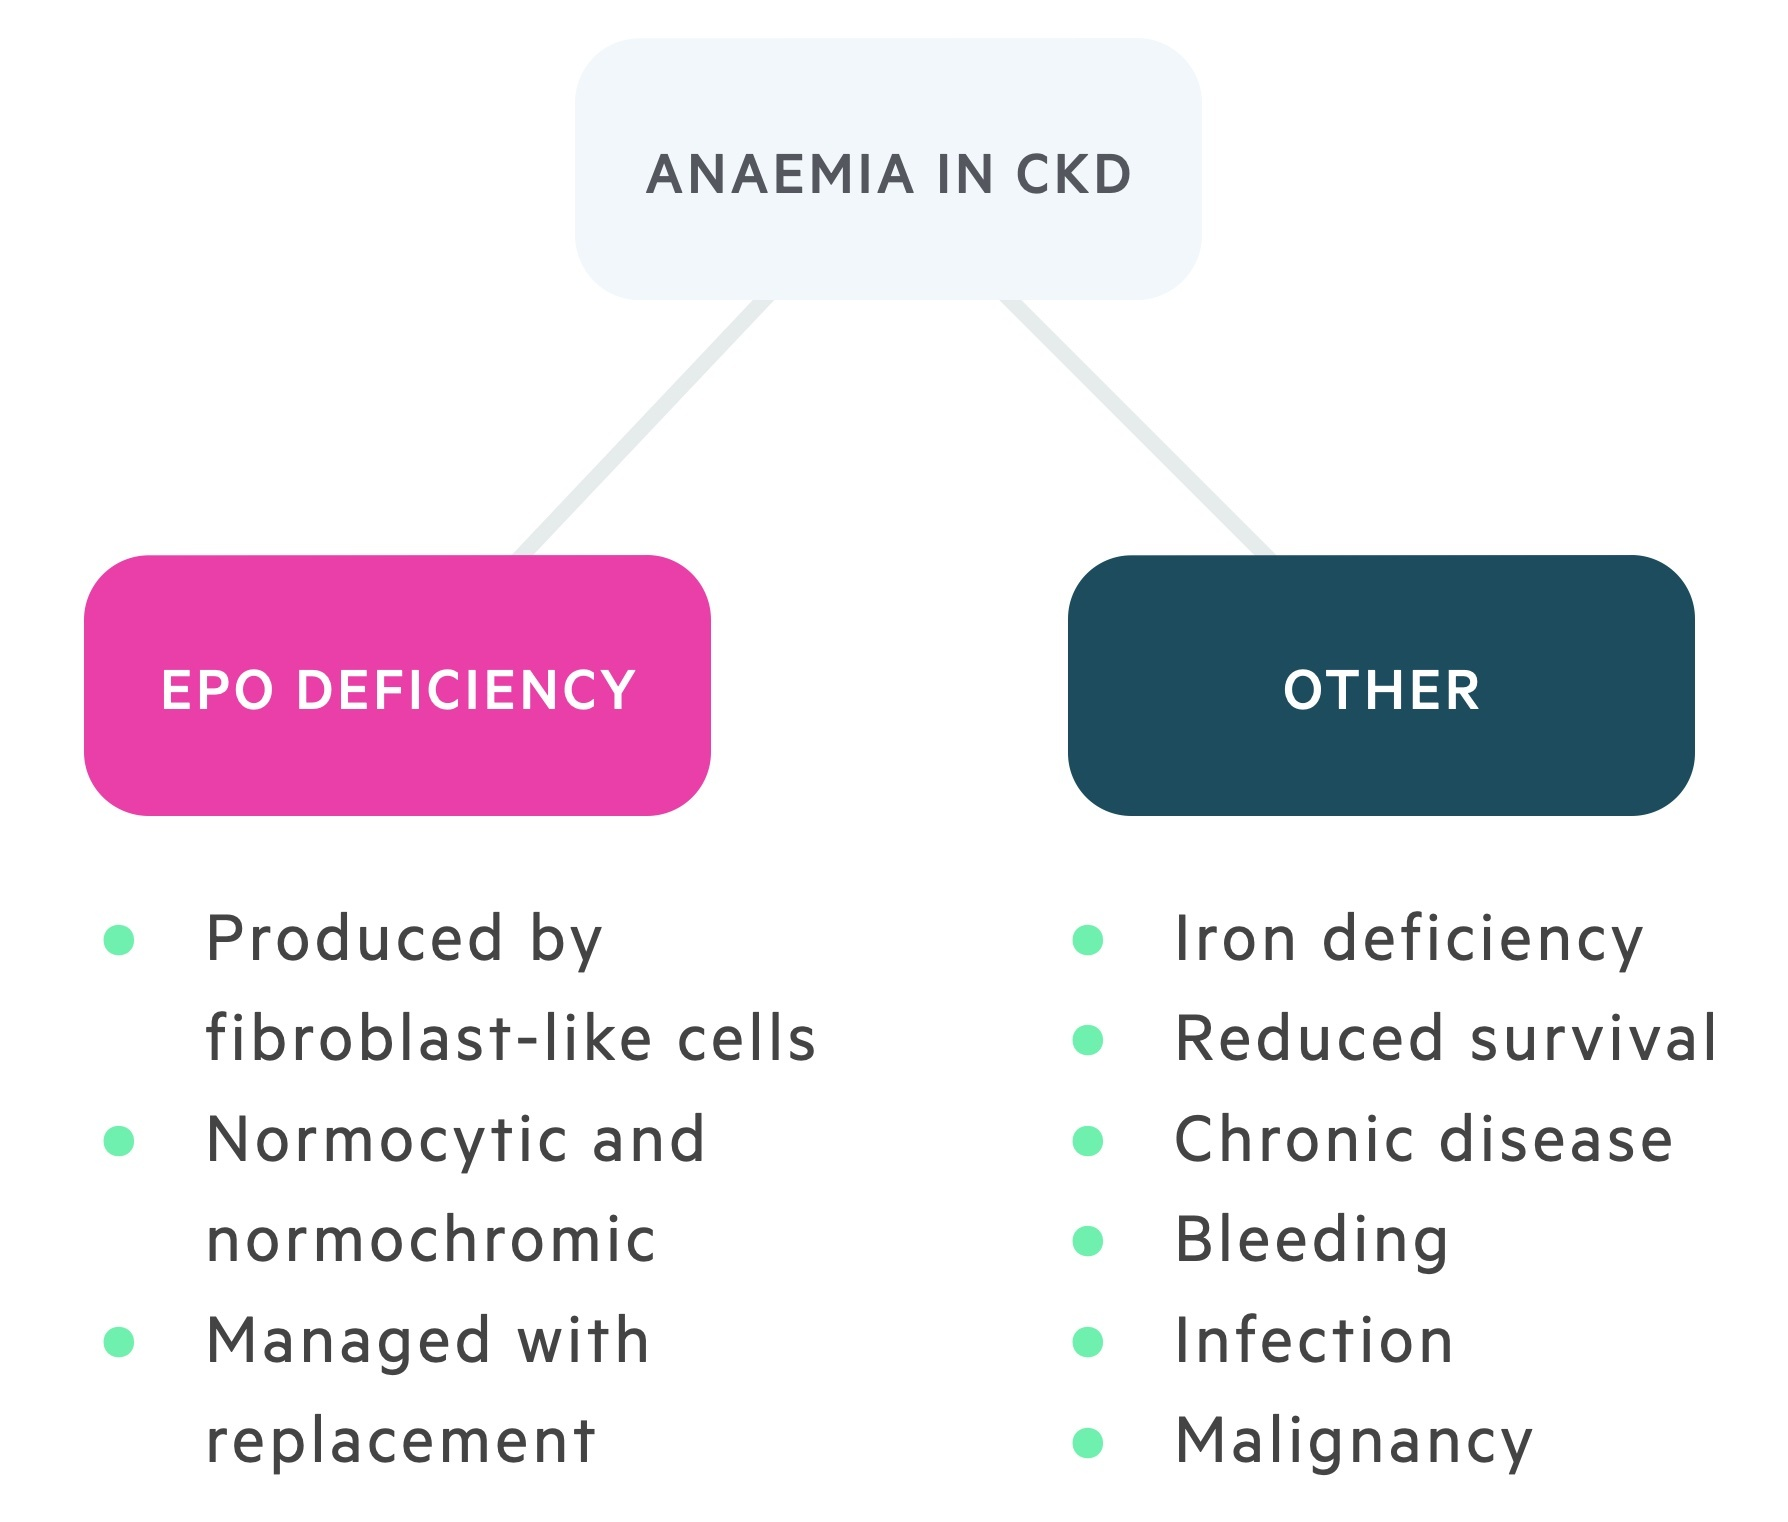 Aetiology of anaemia in chronic kidney disease (CKD)